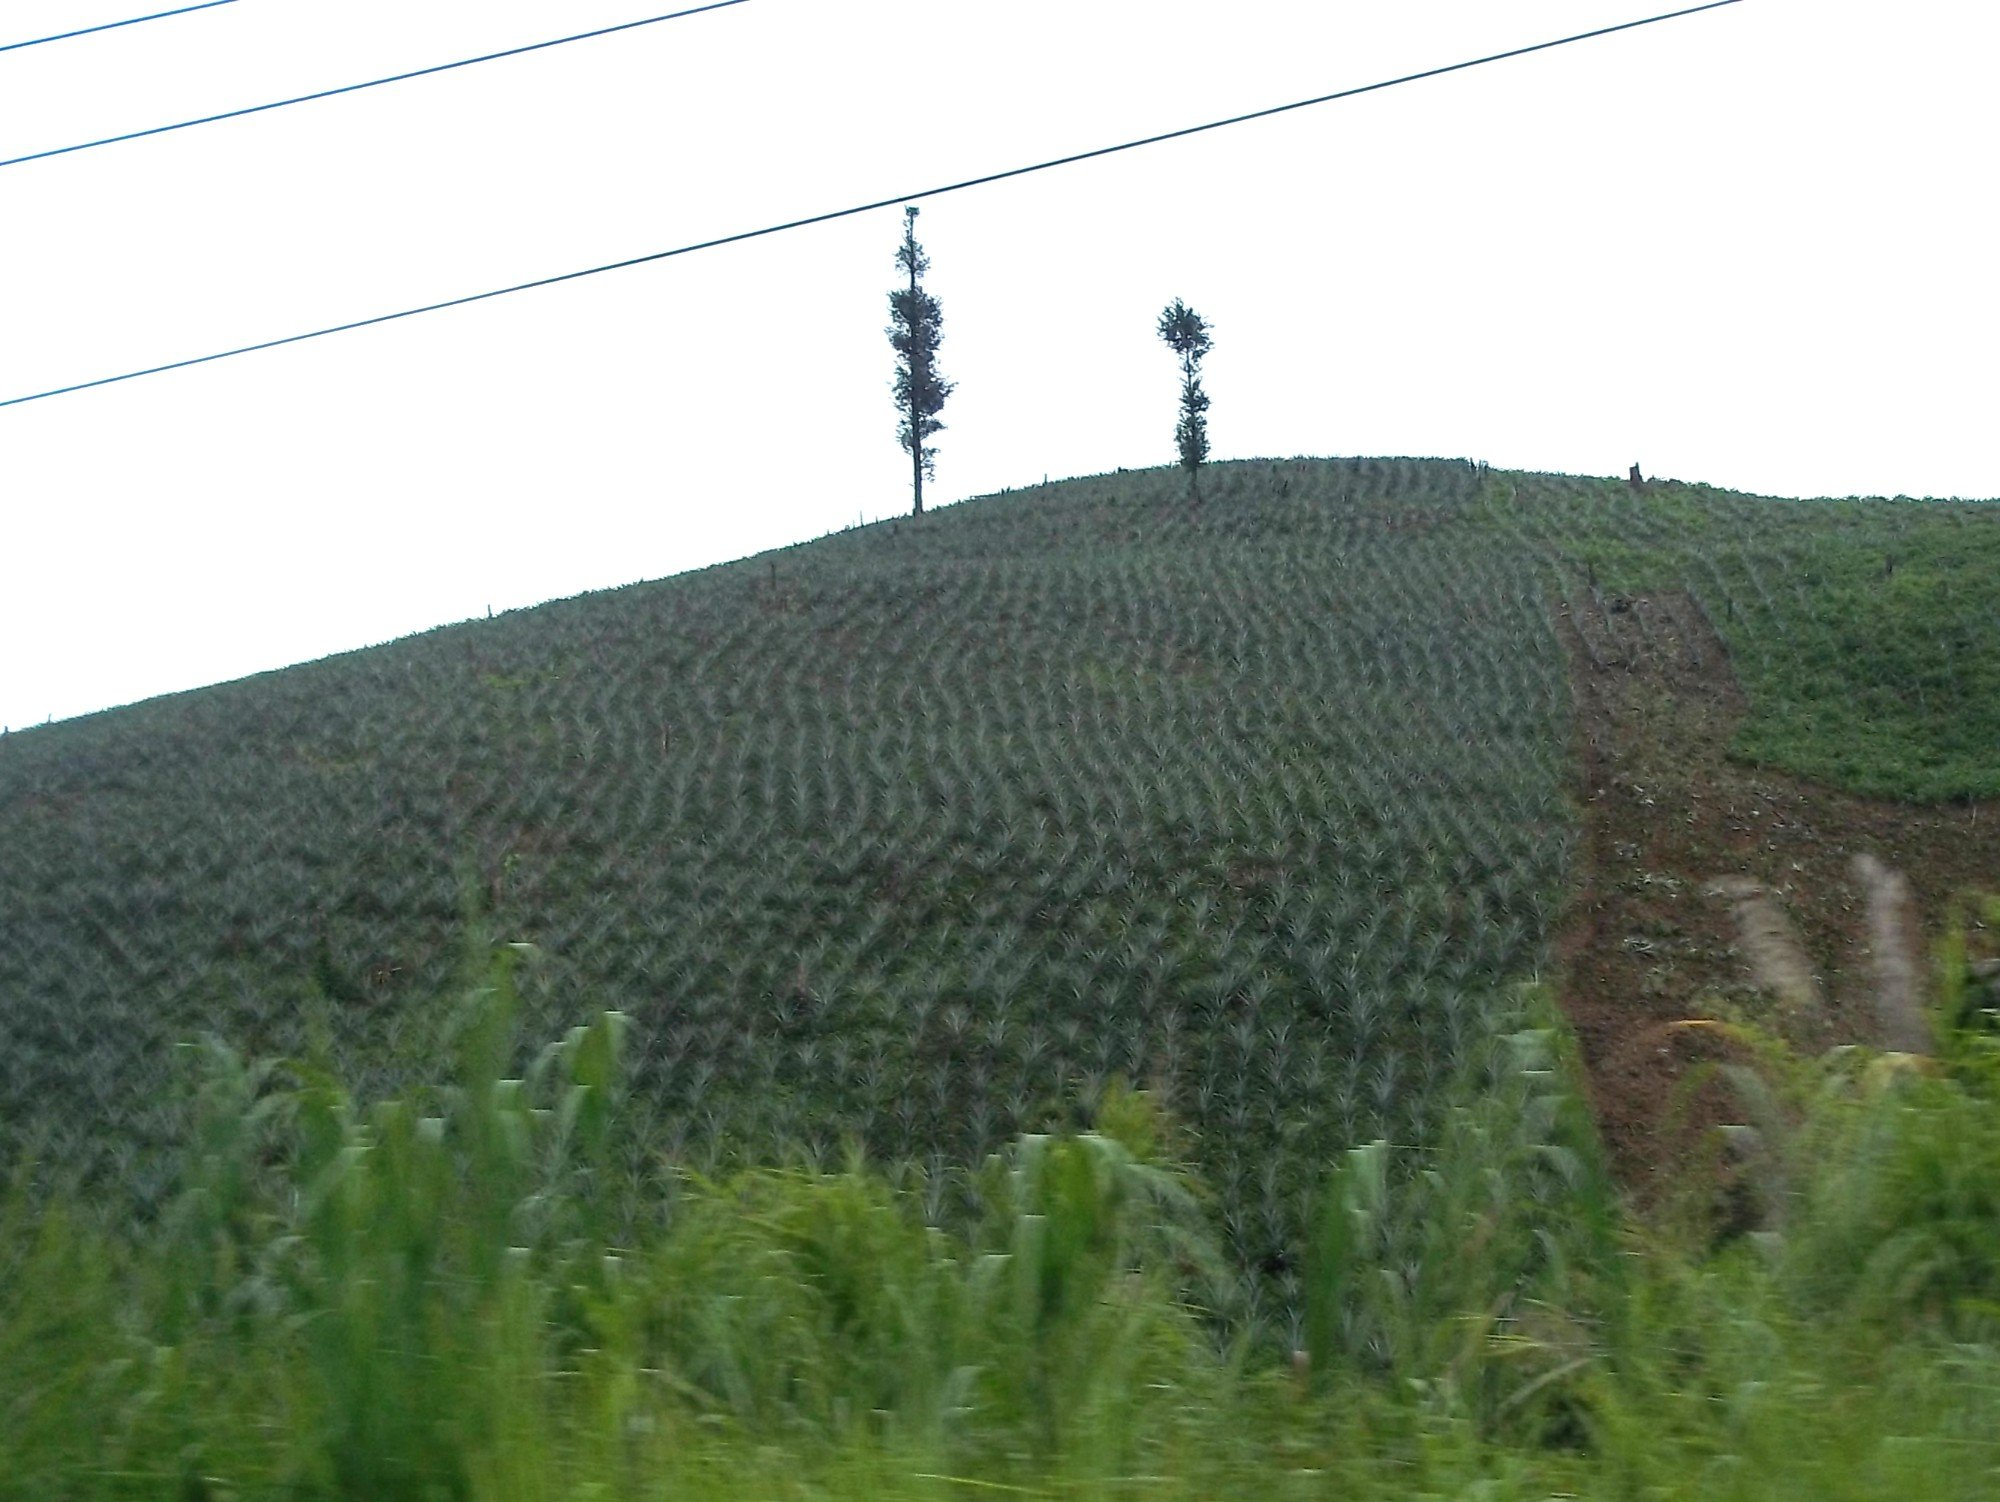 Fields of pineapples farmed by hill tribe communities